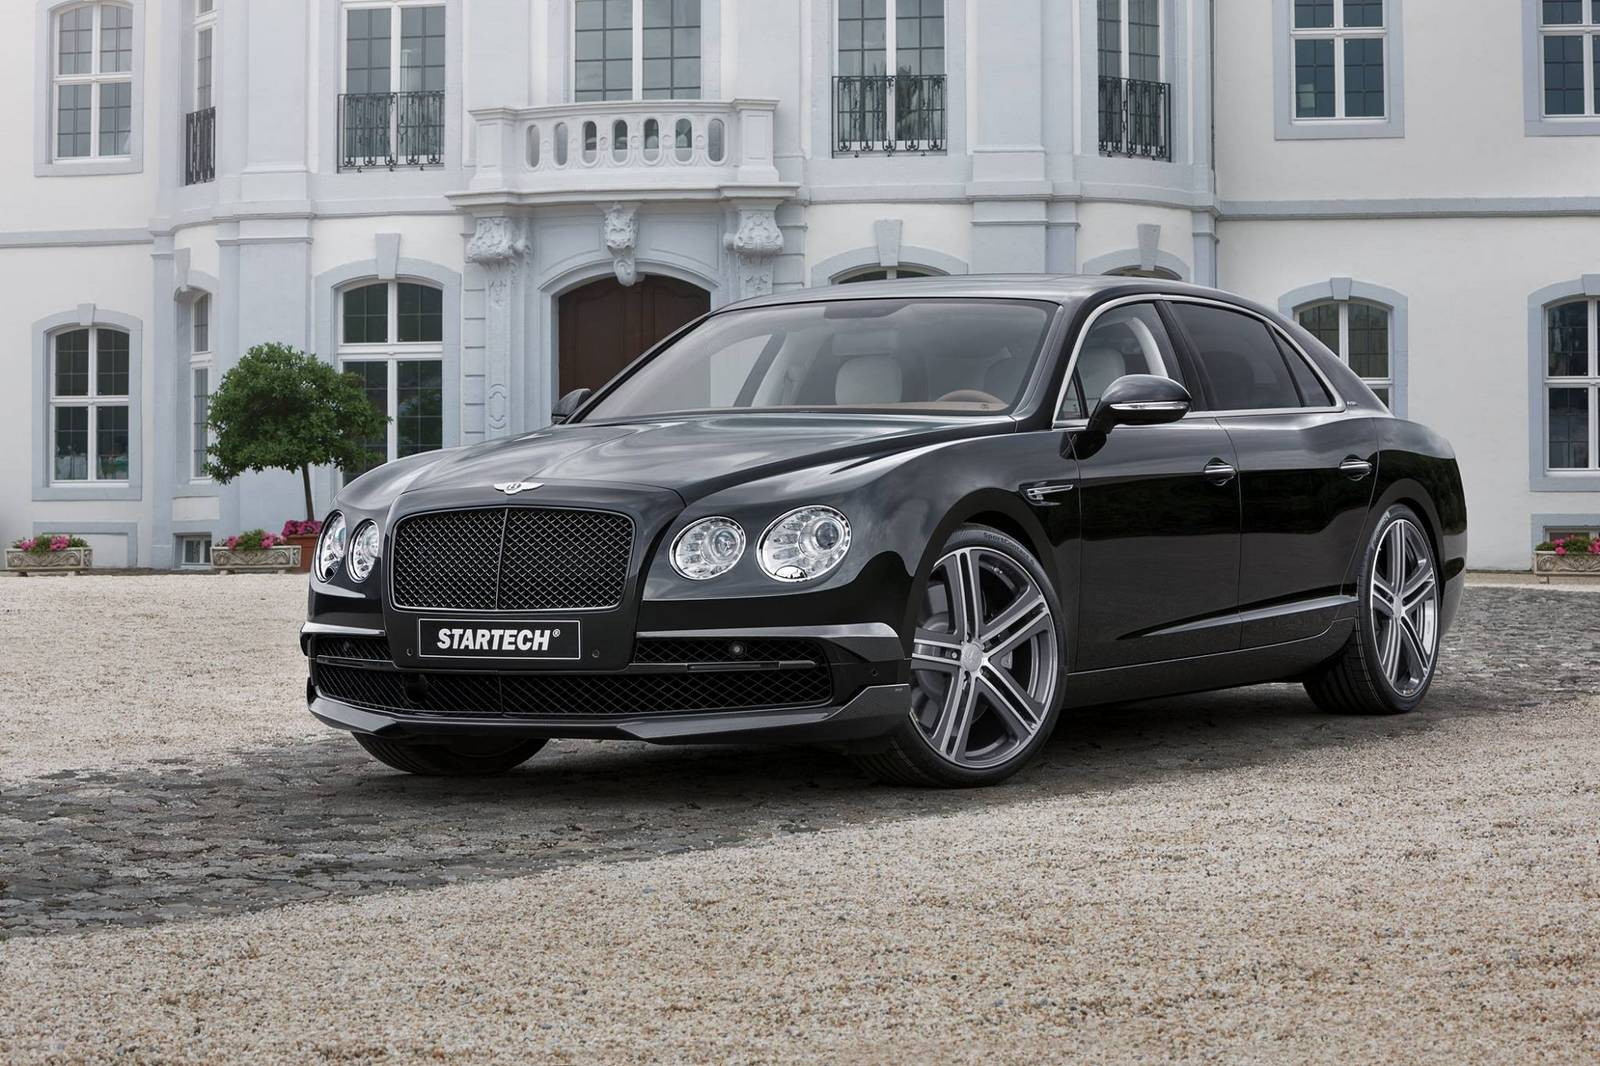 official startech bentley flying spur gtspirit. Black Bedroom Furniture Sets. Home Design Ideas